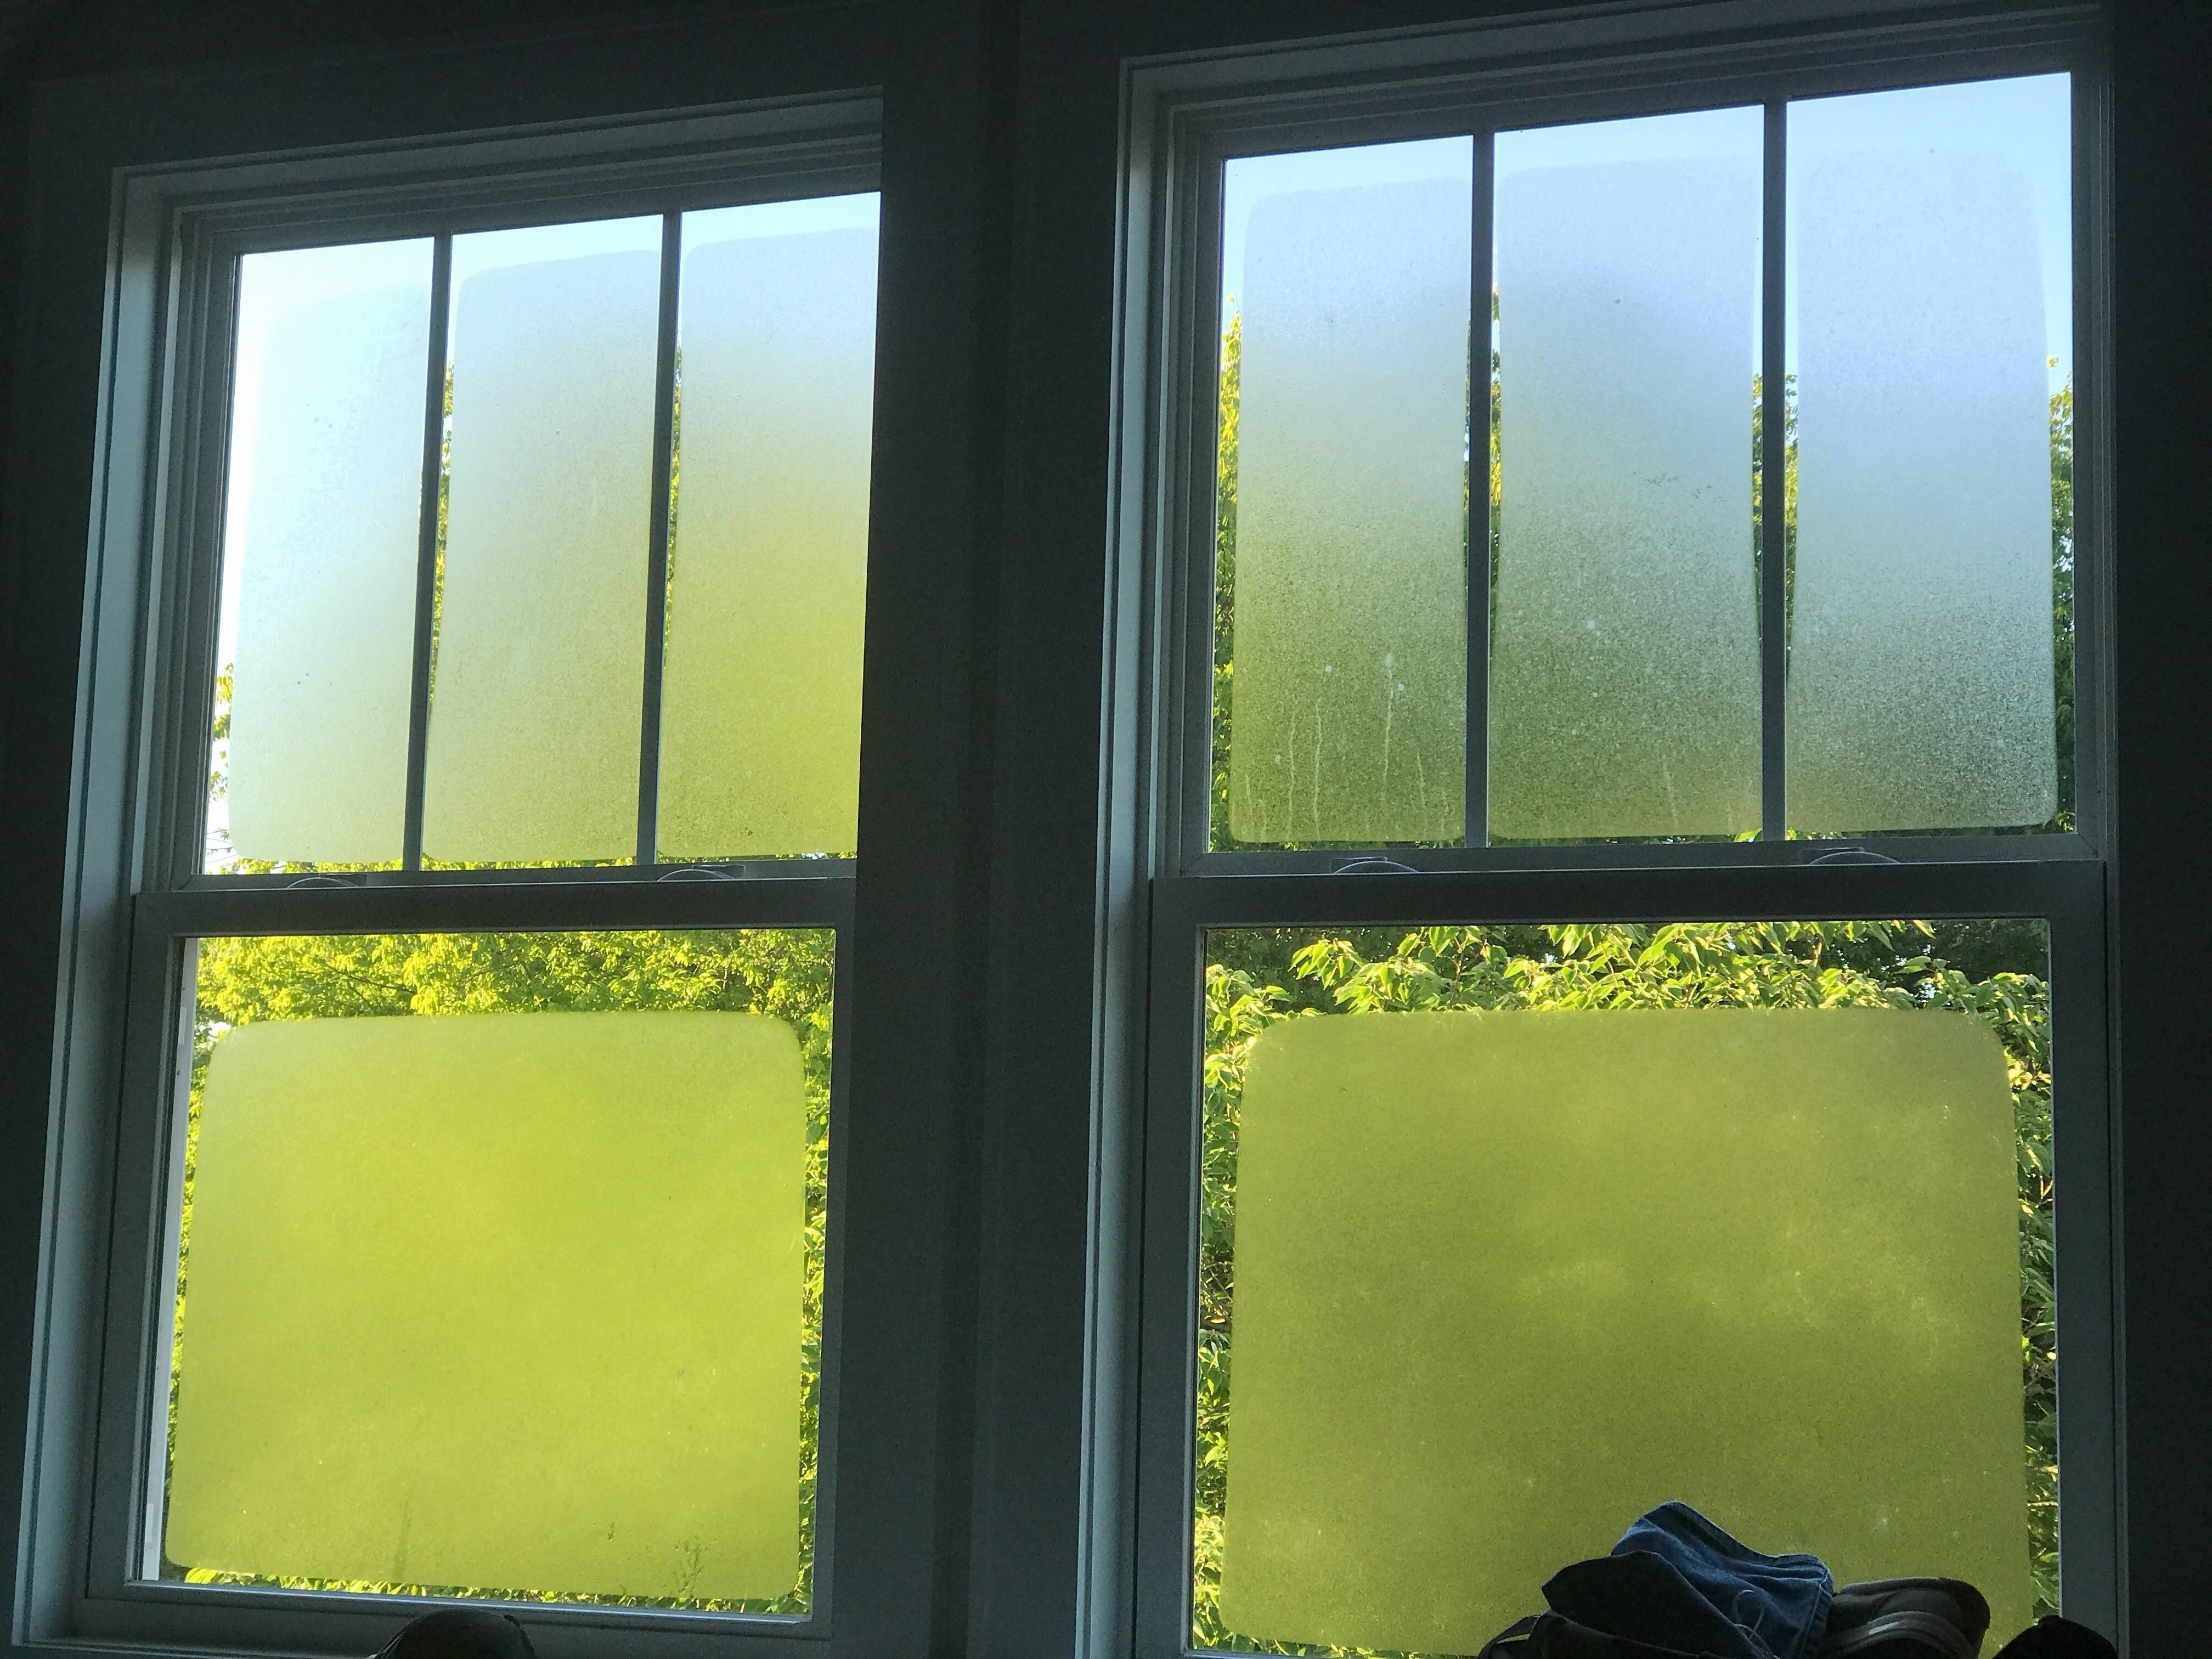 Pop out kitchen window  this strangely satisfying morning window fog iftqfid